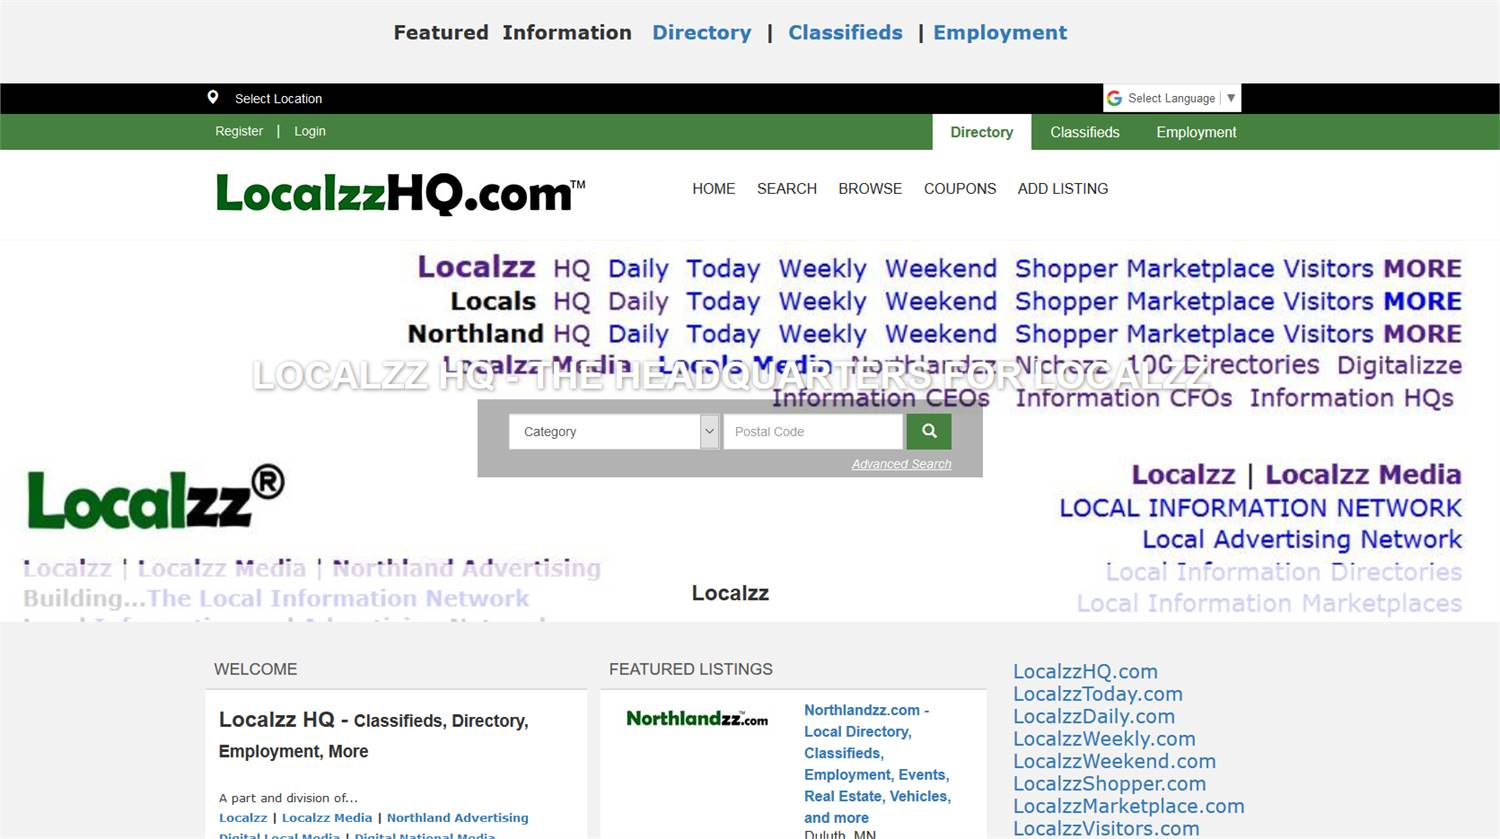 Localzz HQ - LocalzzHQ.com - The Headquarters for local information